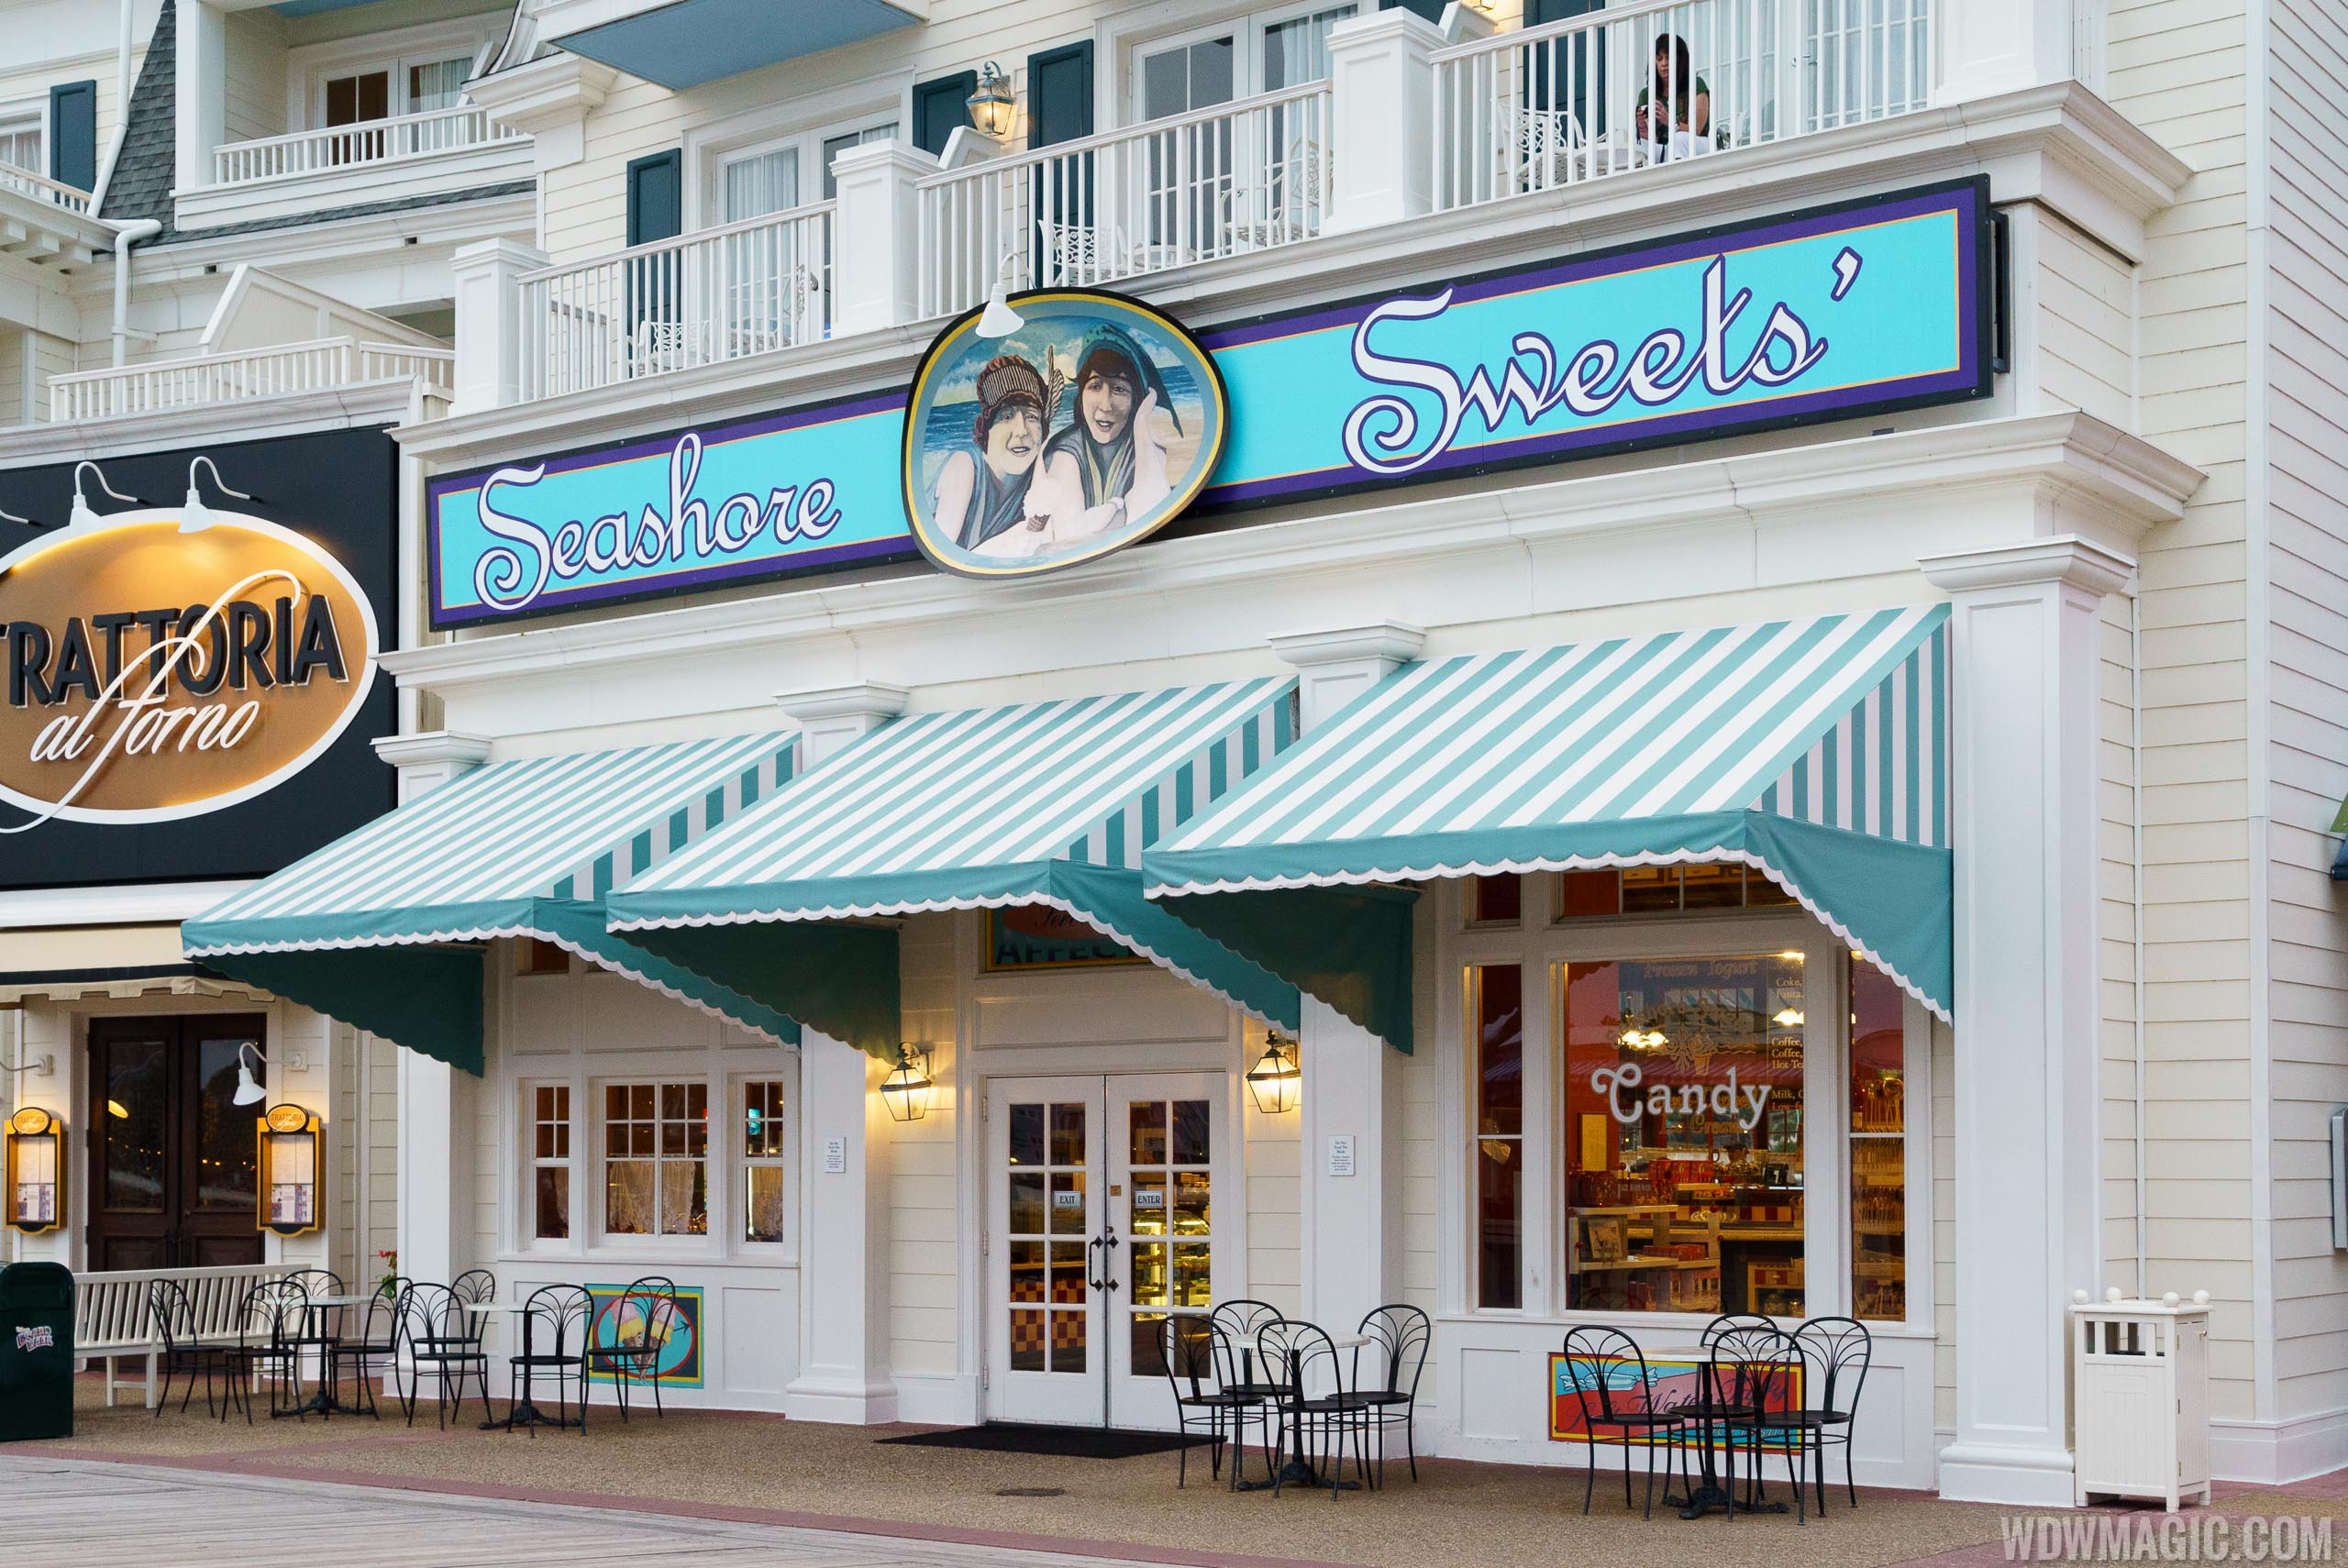 Seashore Sweets overview